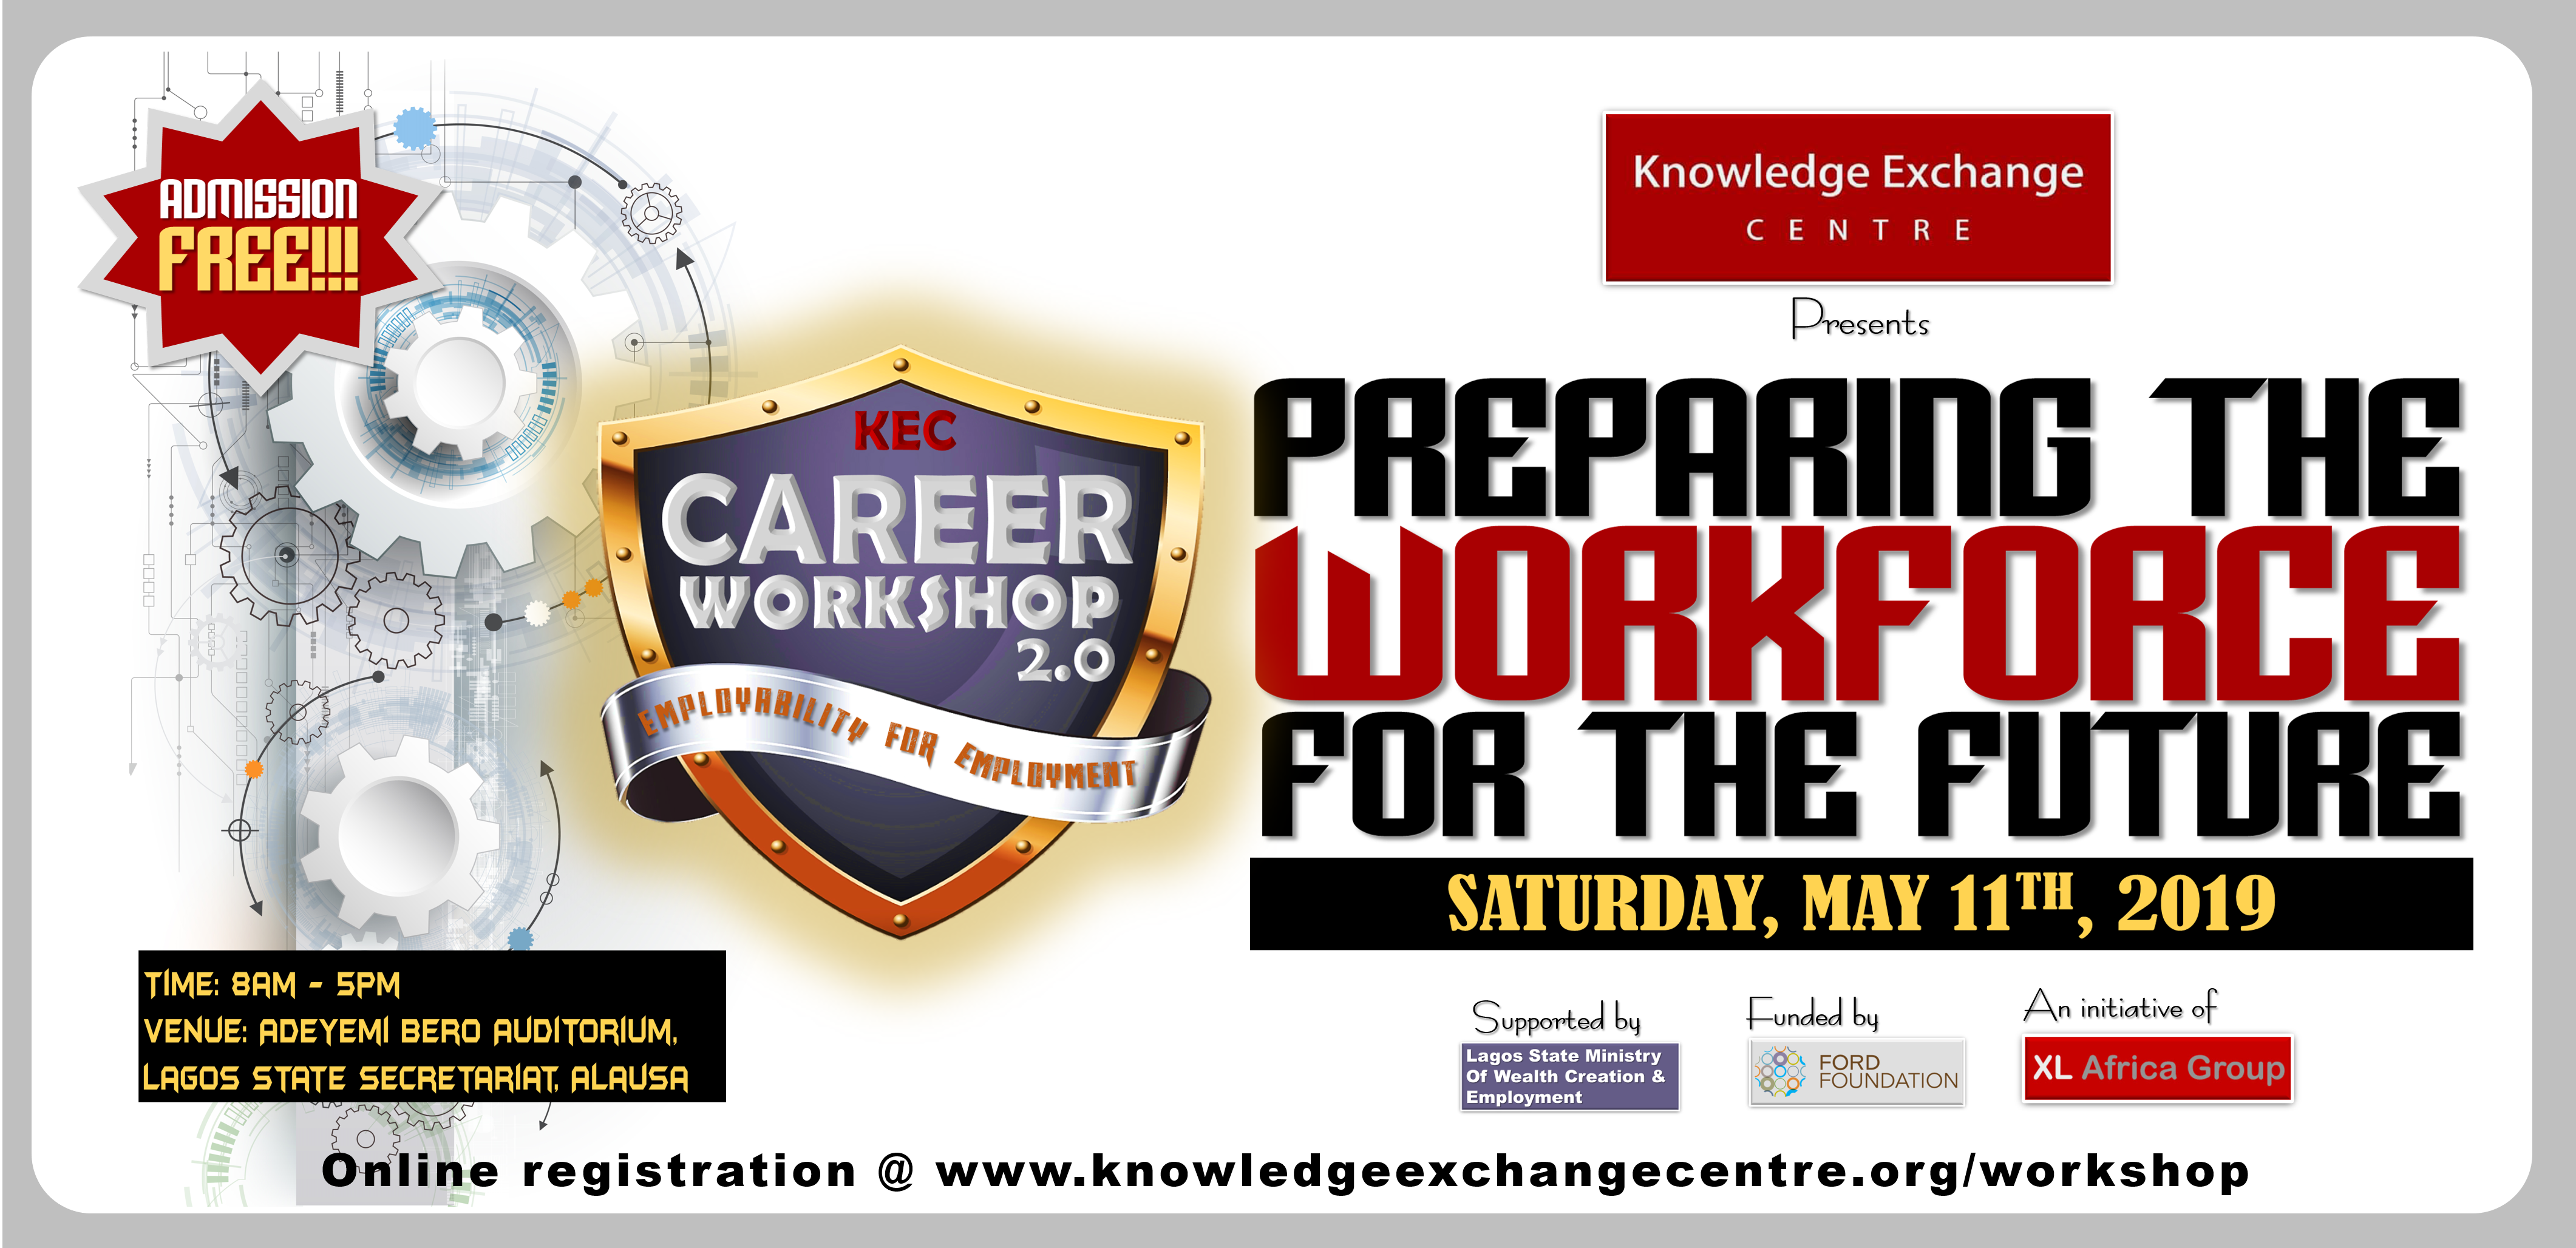 KEC CAREER WORKSHOP